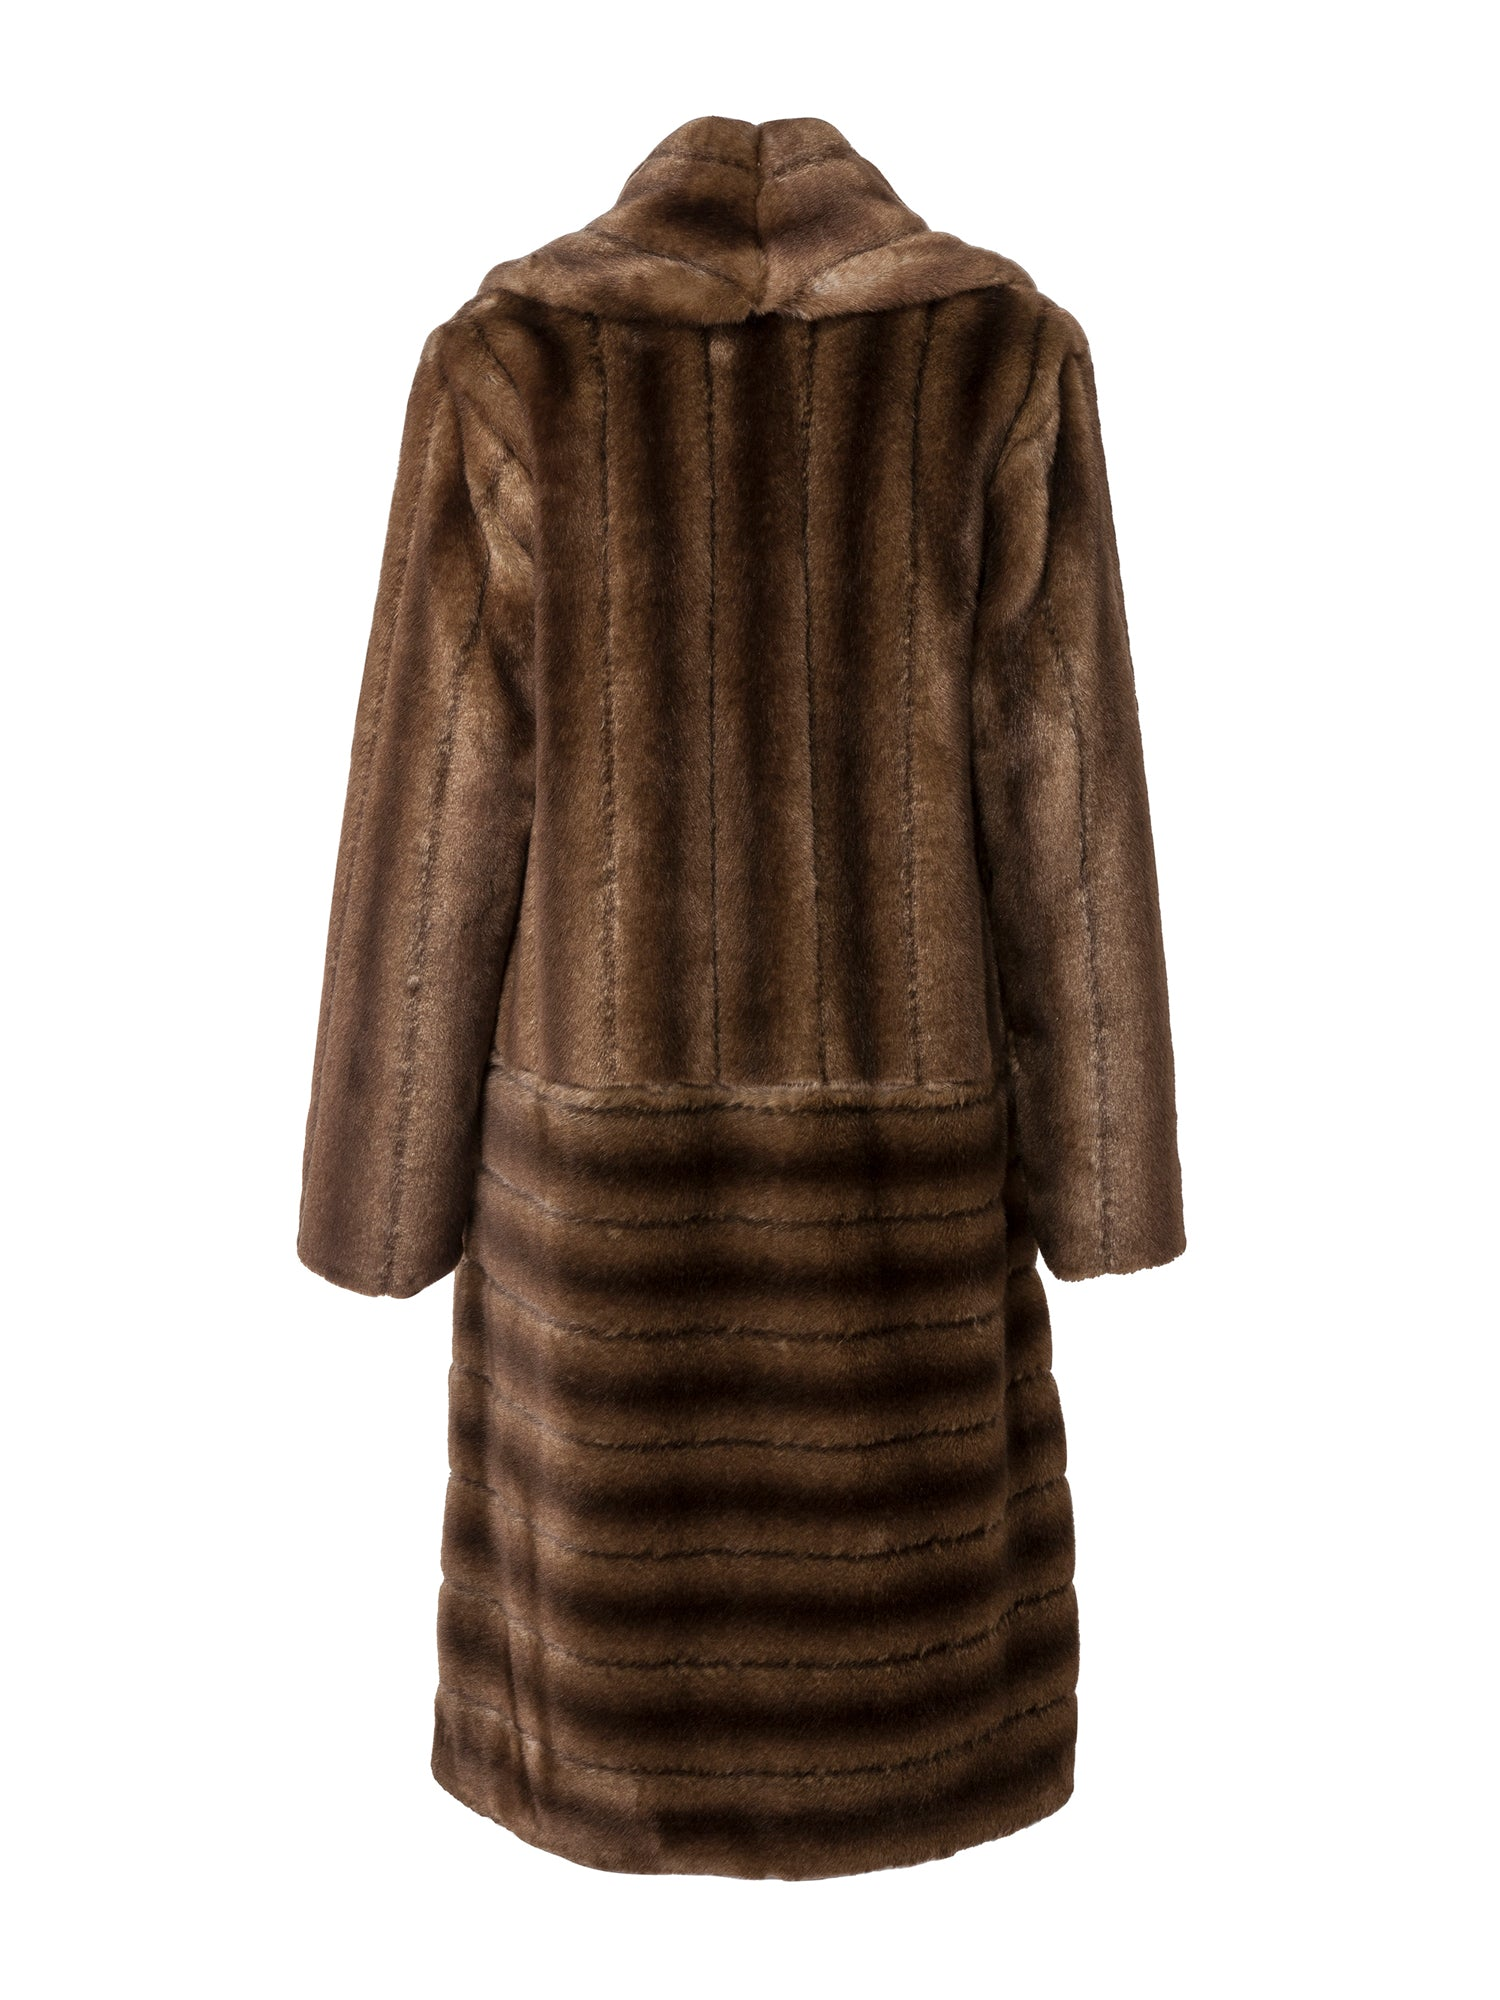 A Packshot Of Marei1998's Legendary Deutzia Long Faux Fur Coat In Classic Brown Color. Made From Plush Faux Fur, Which Feels So Warm And Comfortable. The Full Length Silhouette Creates A Contemporary Vintage Look. Cut In A Slight A-Line Shape And Fully Lined, It Is Ideal For Smooth Layering. Timeless Winter Investment. Back View.